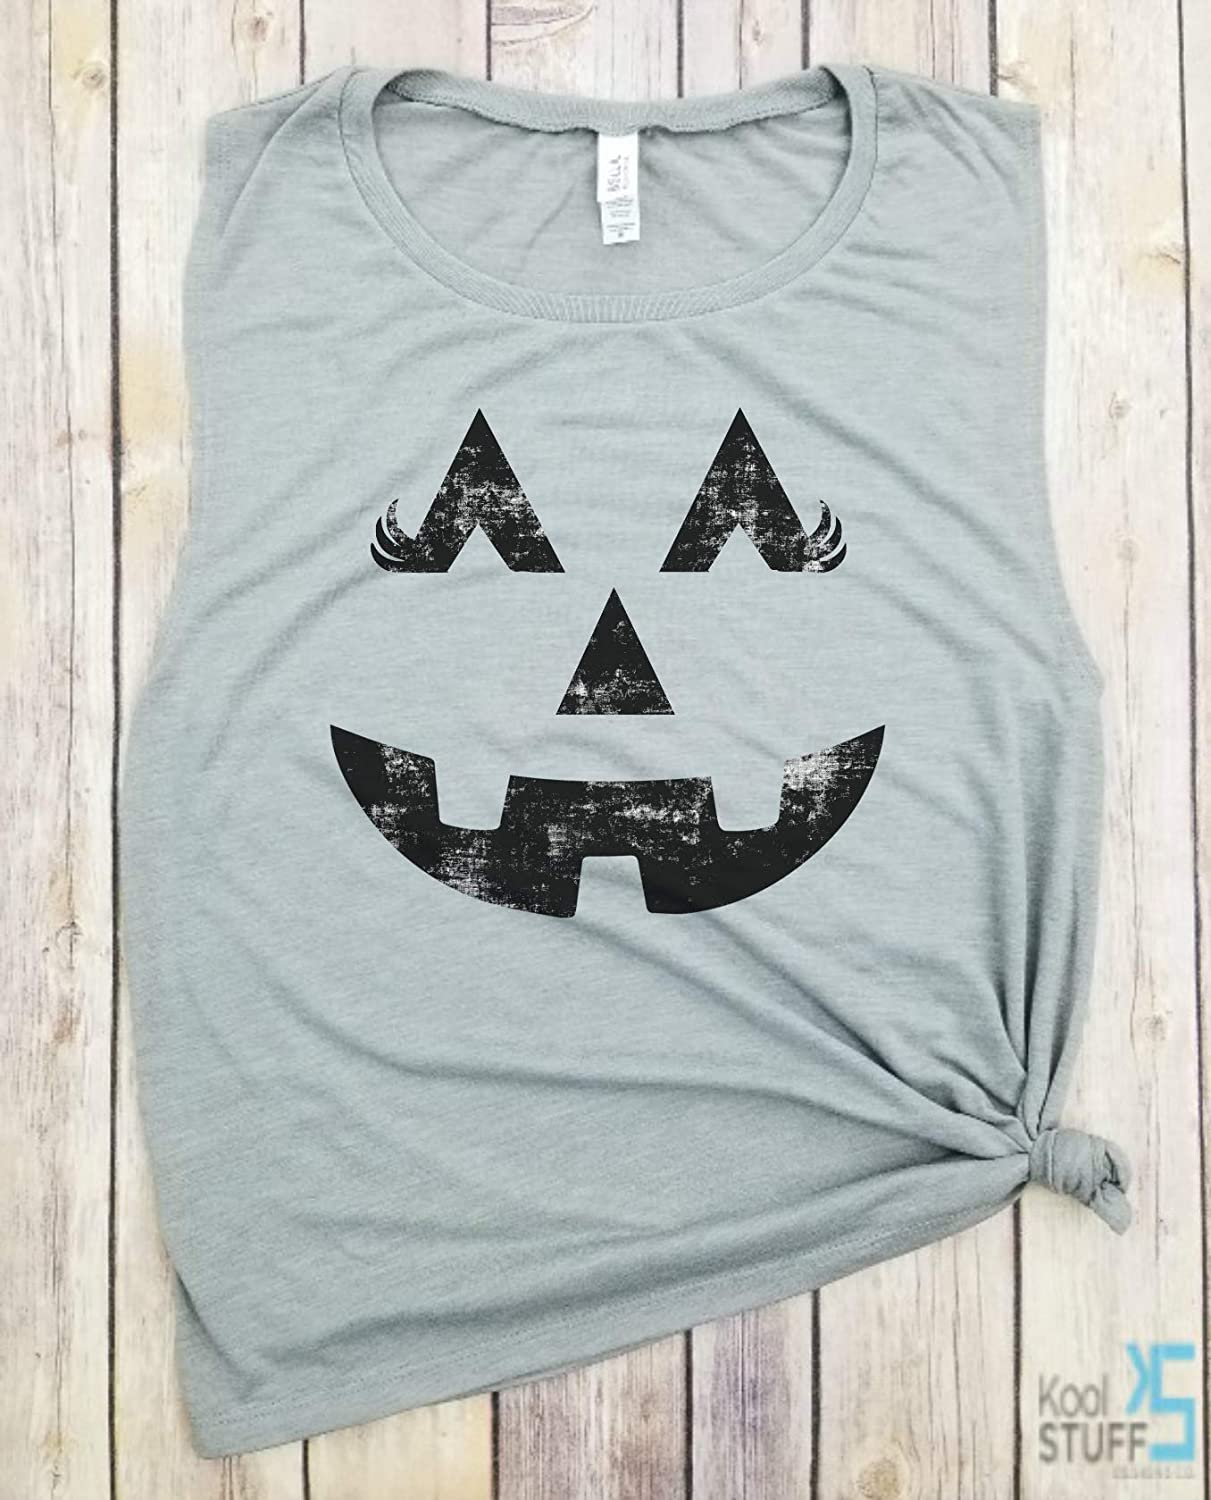 Jack O Lantern, Womens Halloween Tank, Cute Female Jack O Lanter Tee, Trendy Halloween shirt, Halloween Party Shirt, halloween shirt, women's Tank, Halloween Party shirt women's Tank